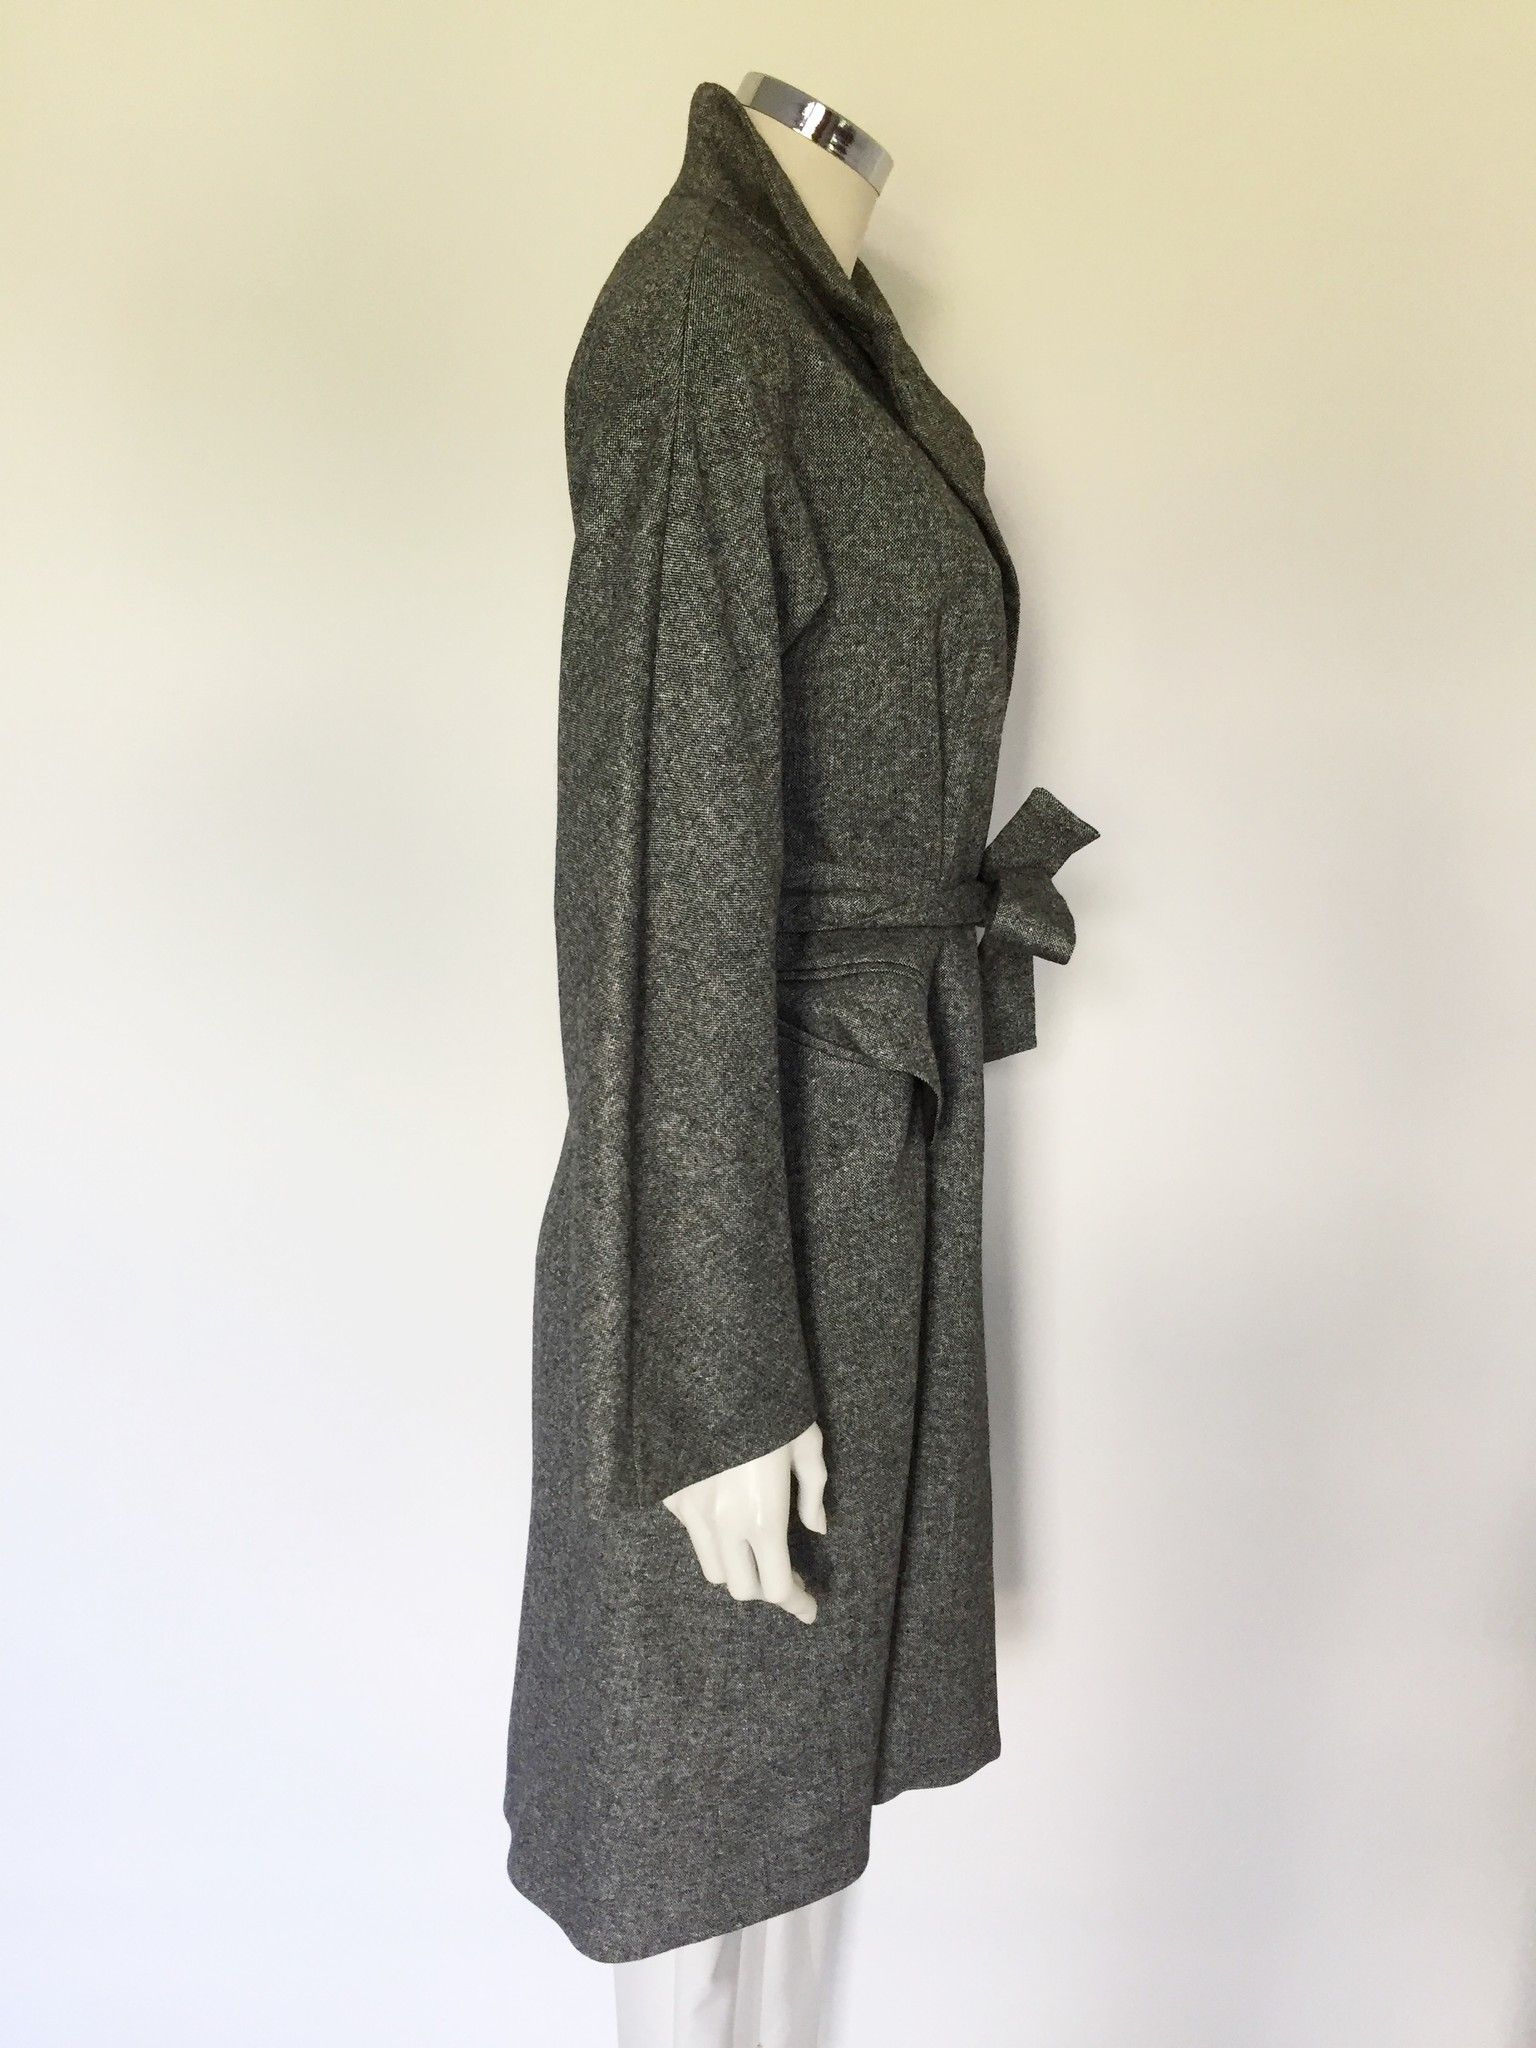 Adele Fado Medium Length Overcoat Cod.CP120